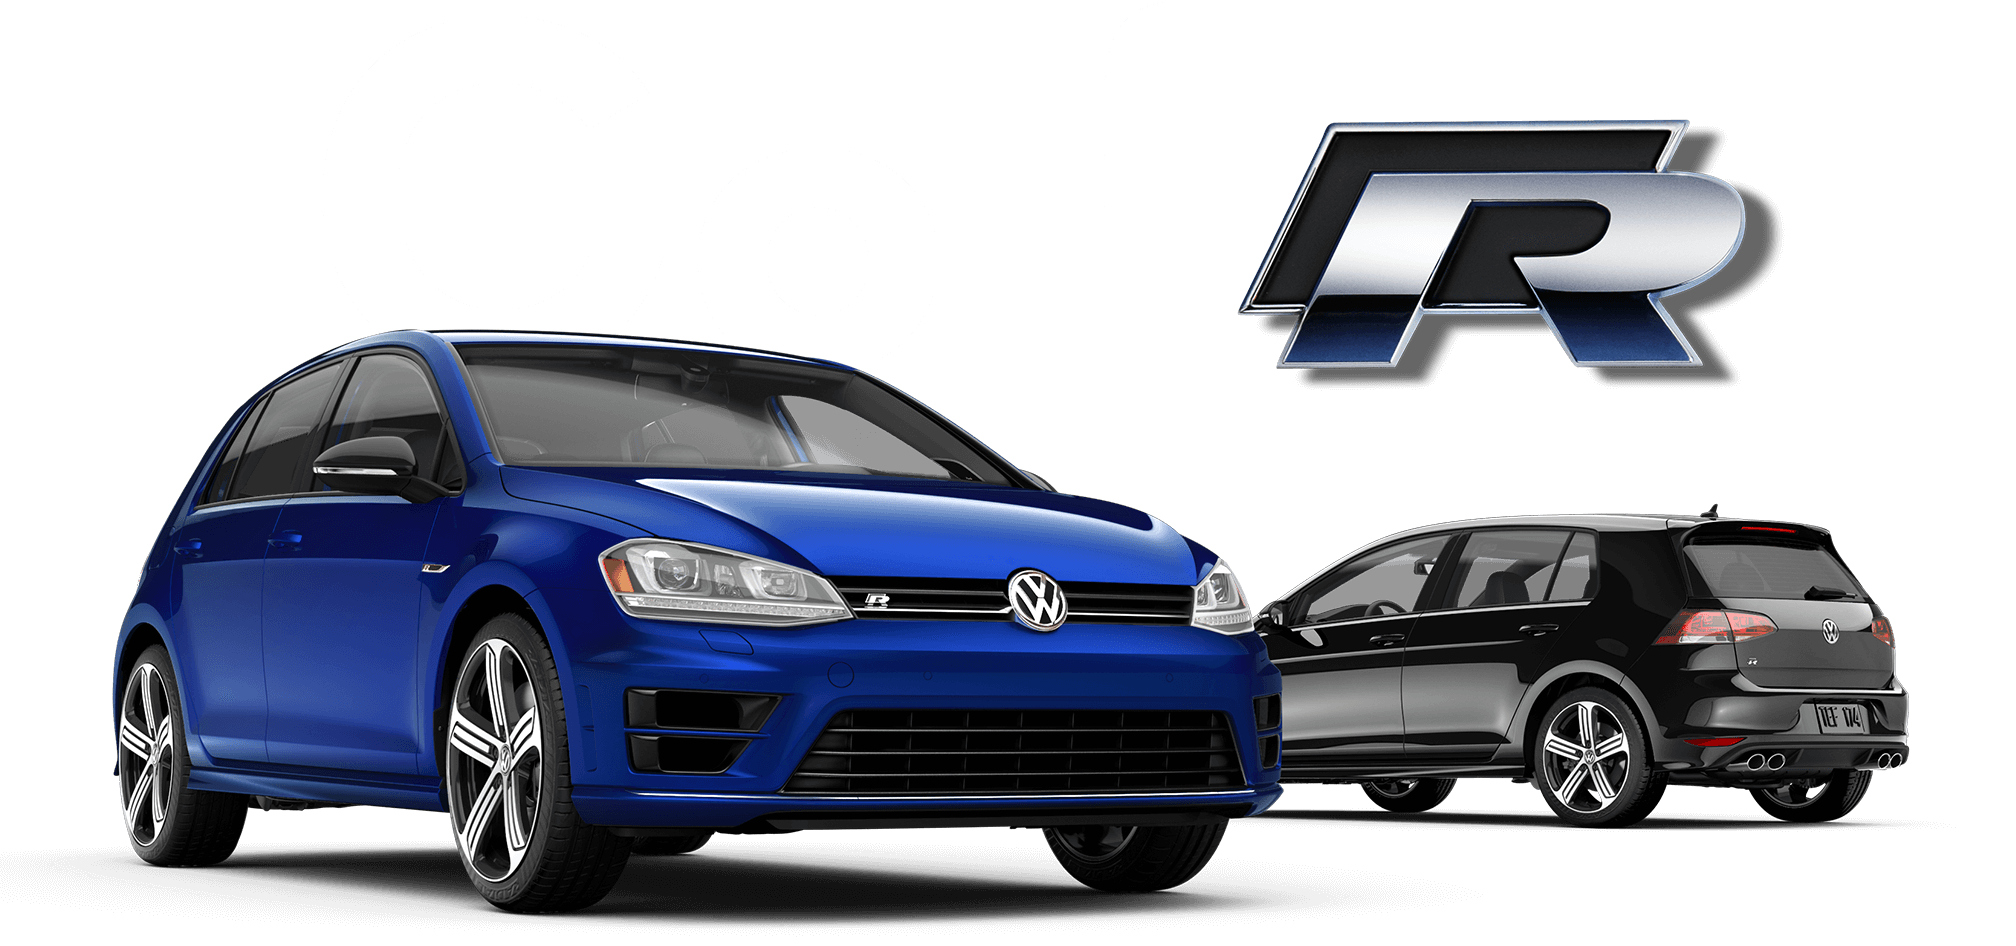 Volkswagen Lease Price & Offers - Inver Grove Heights MN